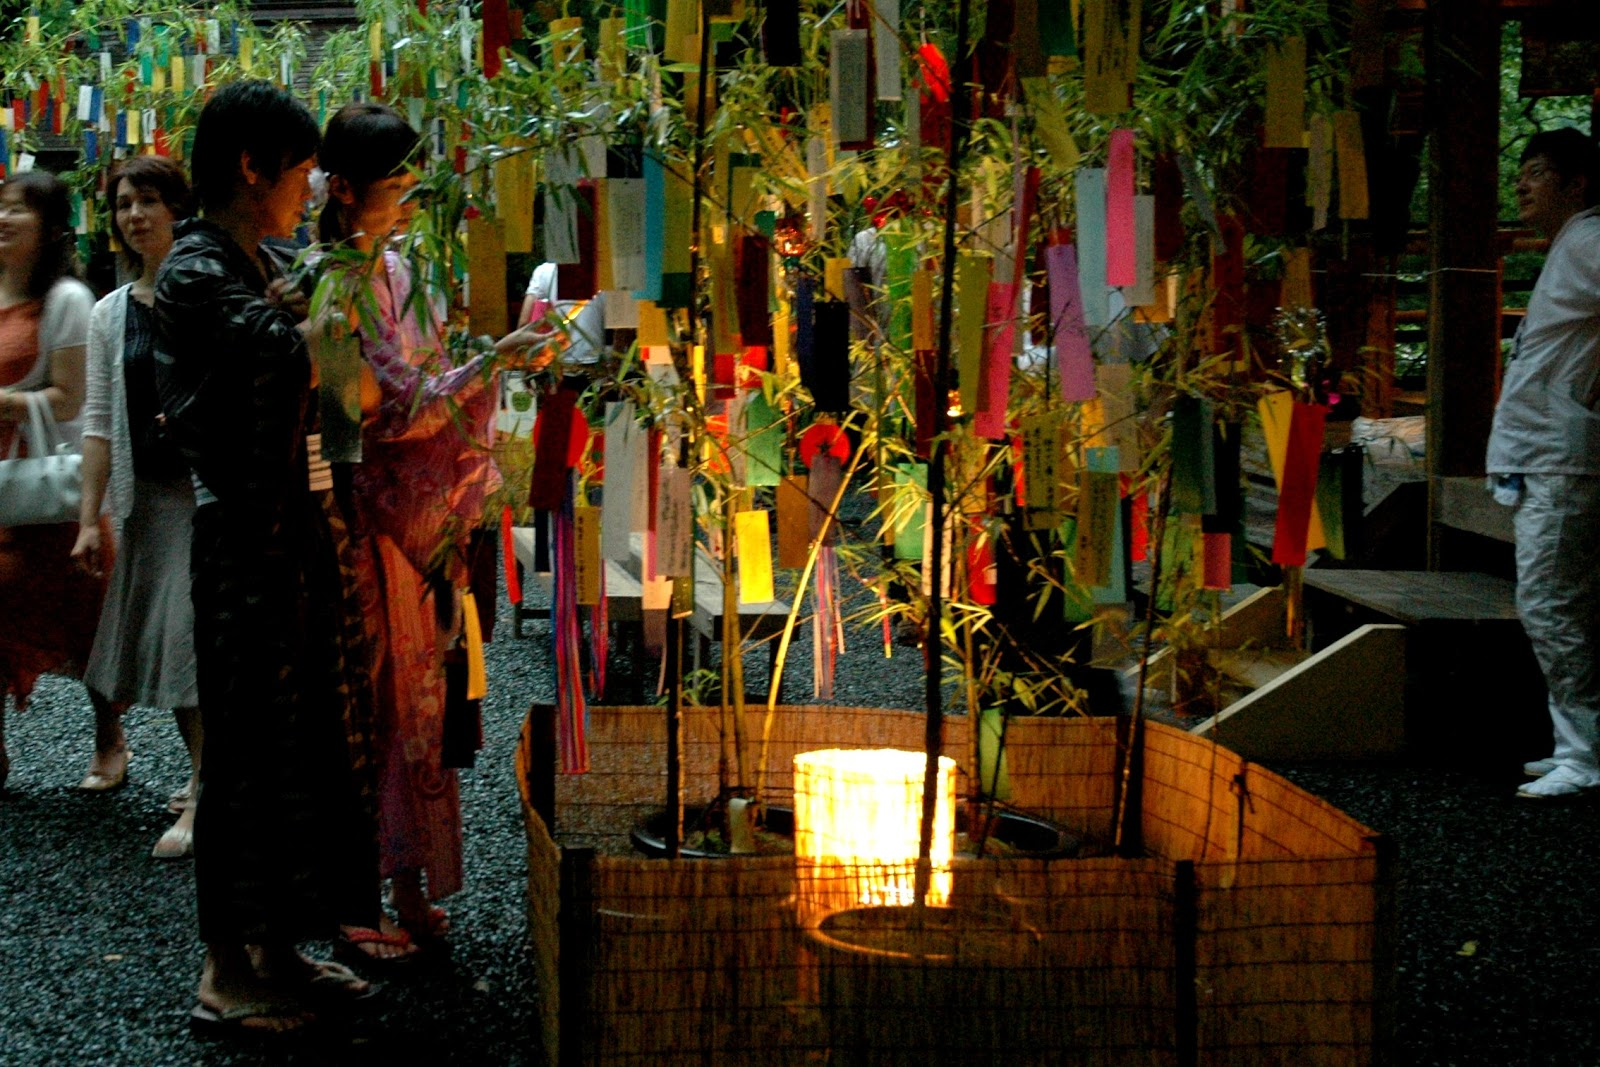 A couple hang tanzaku on bamboo at Tanabata in Japan (Credit: Yuki Yaginuma)